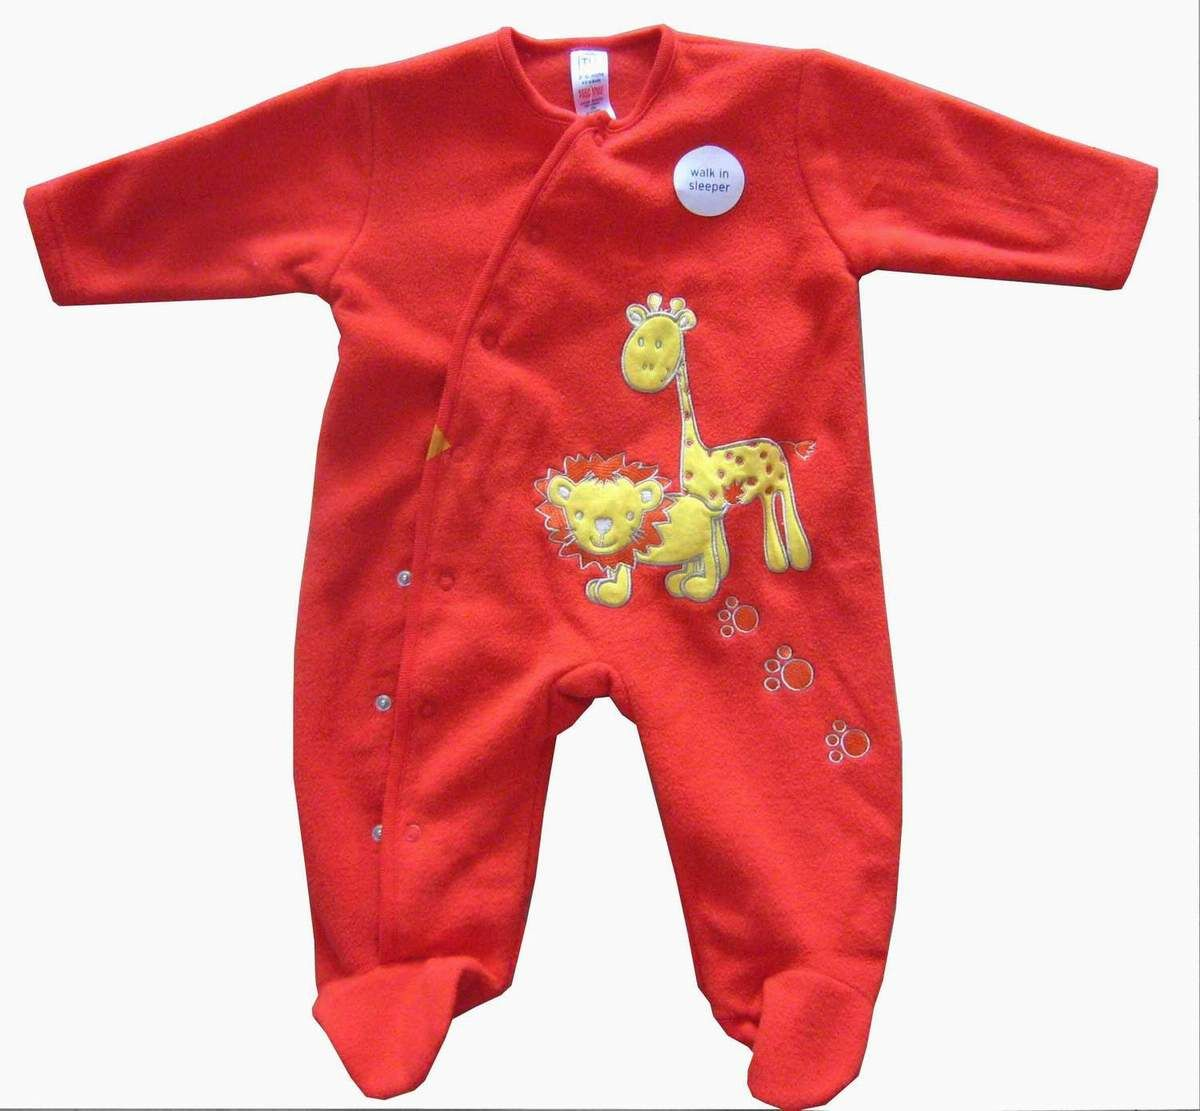 China Baby Clothing (INF-CL25) - China baby clothing, infant ...